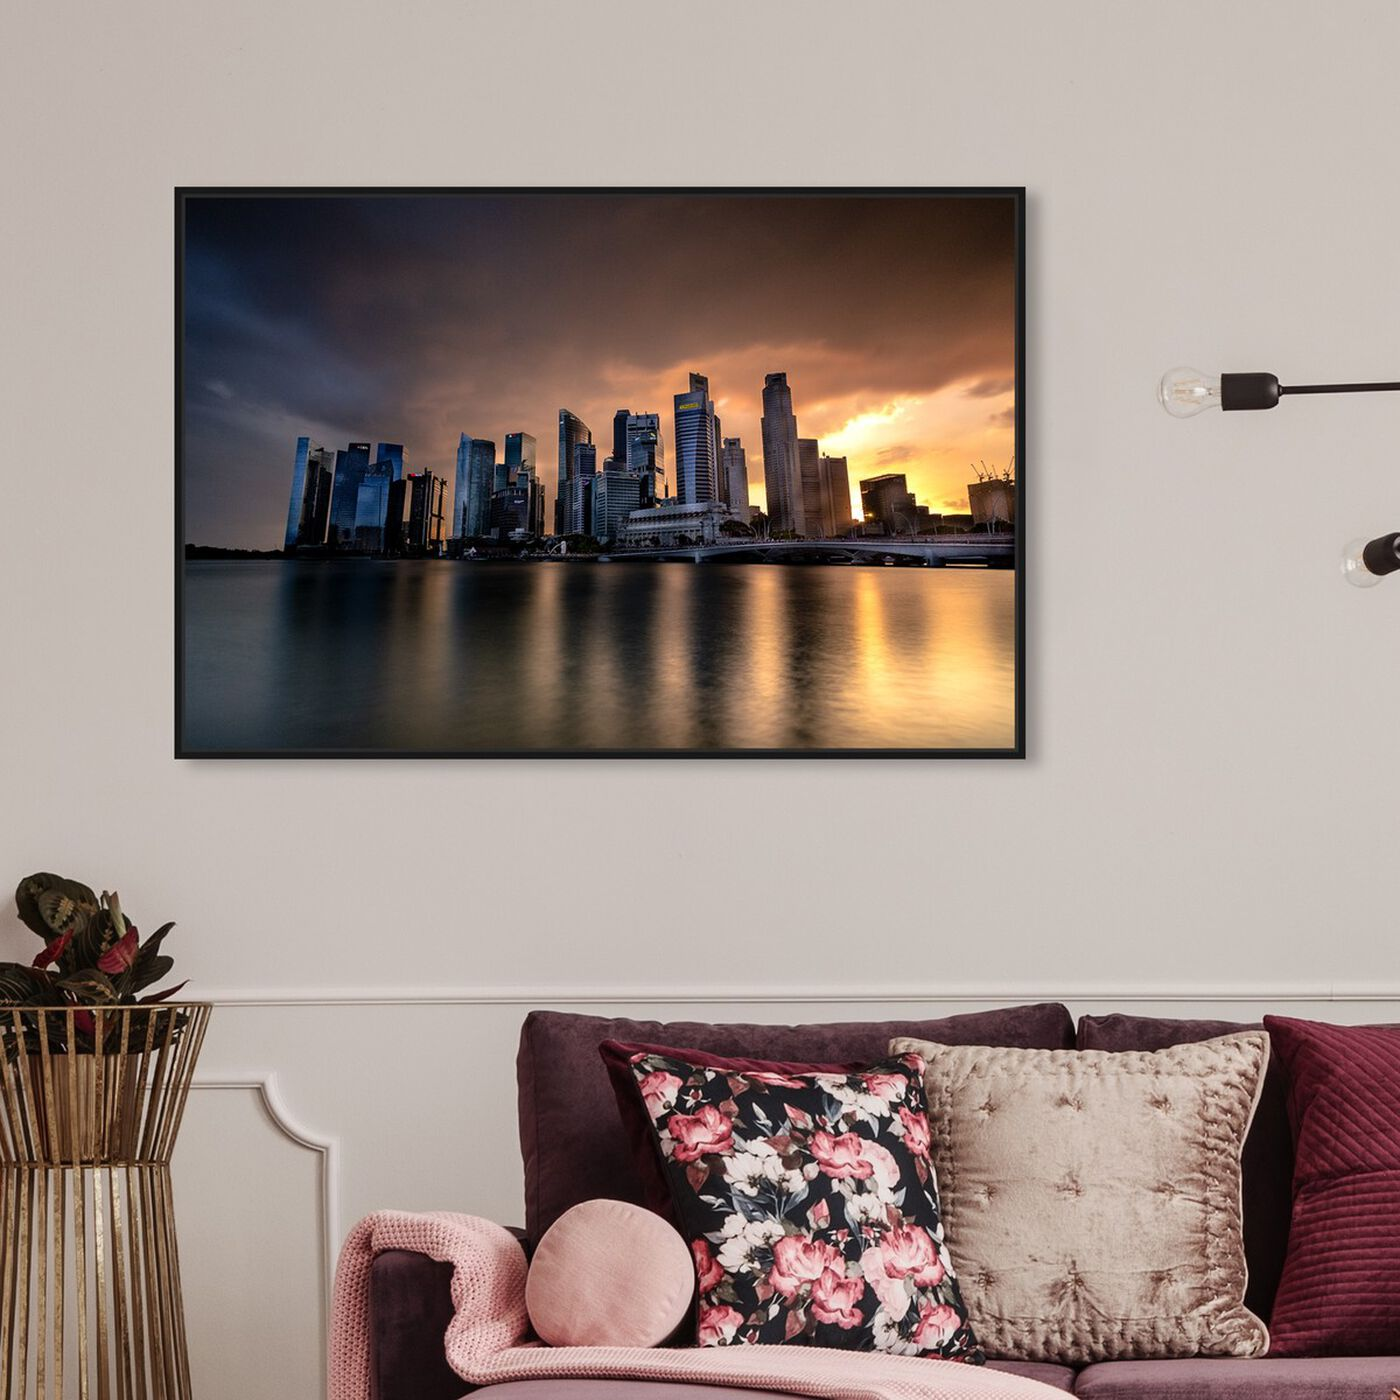 Hanging view of Curro Cardenal - Skyline featuring cities and skylines and world skylines art.